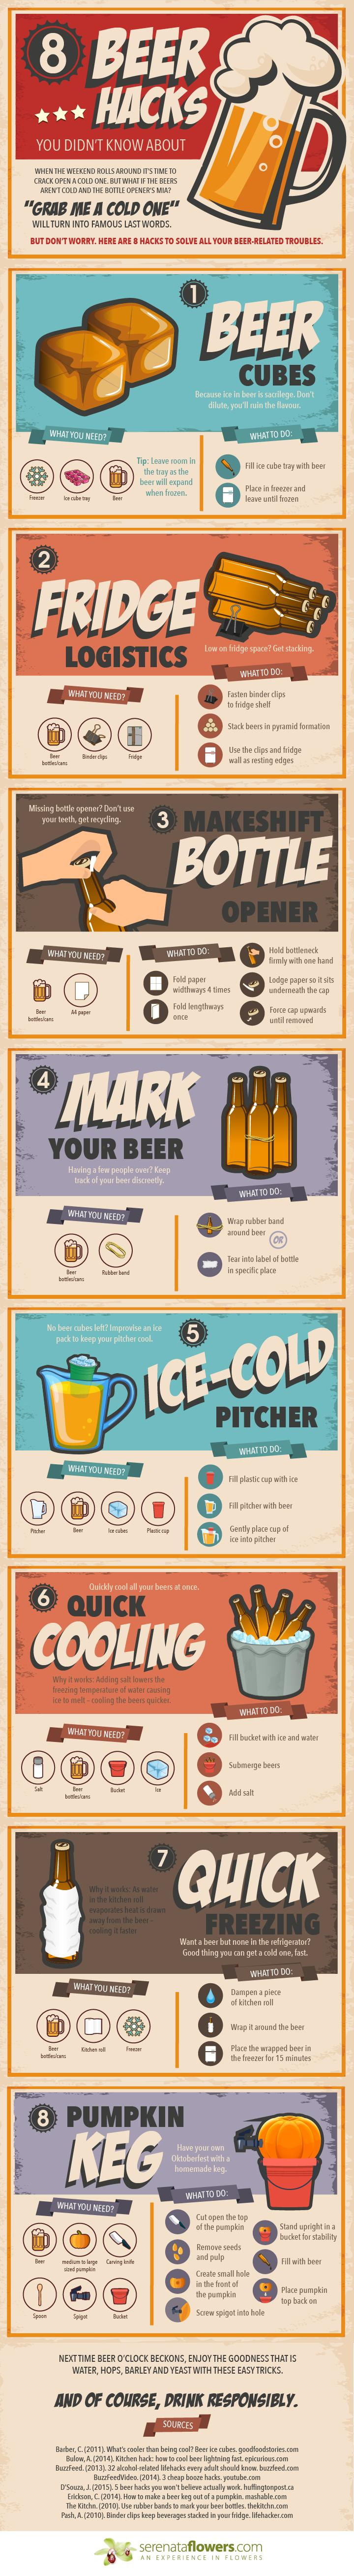 8-Beer-hacks-you-didnt-know-about